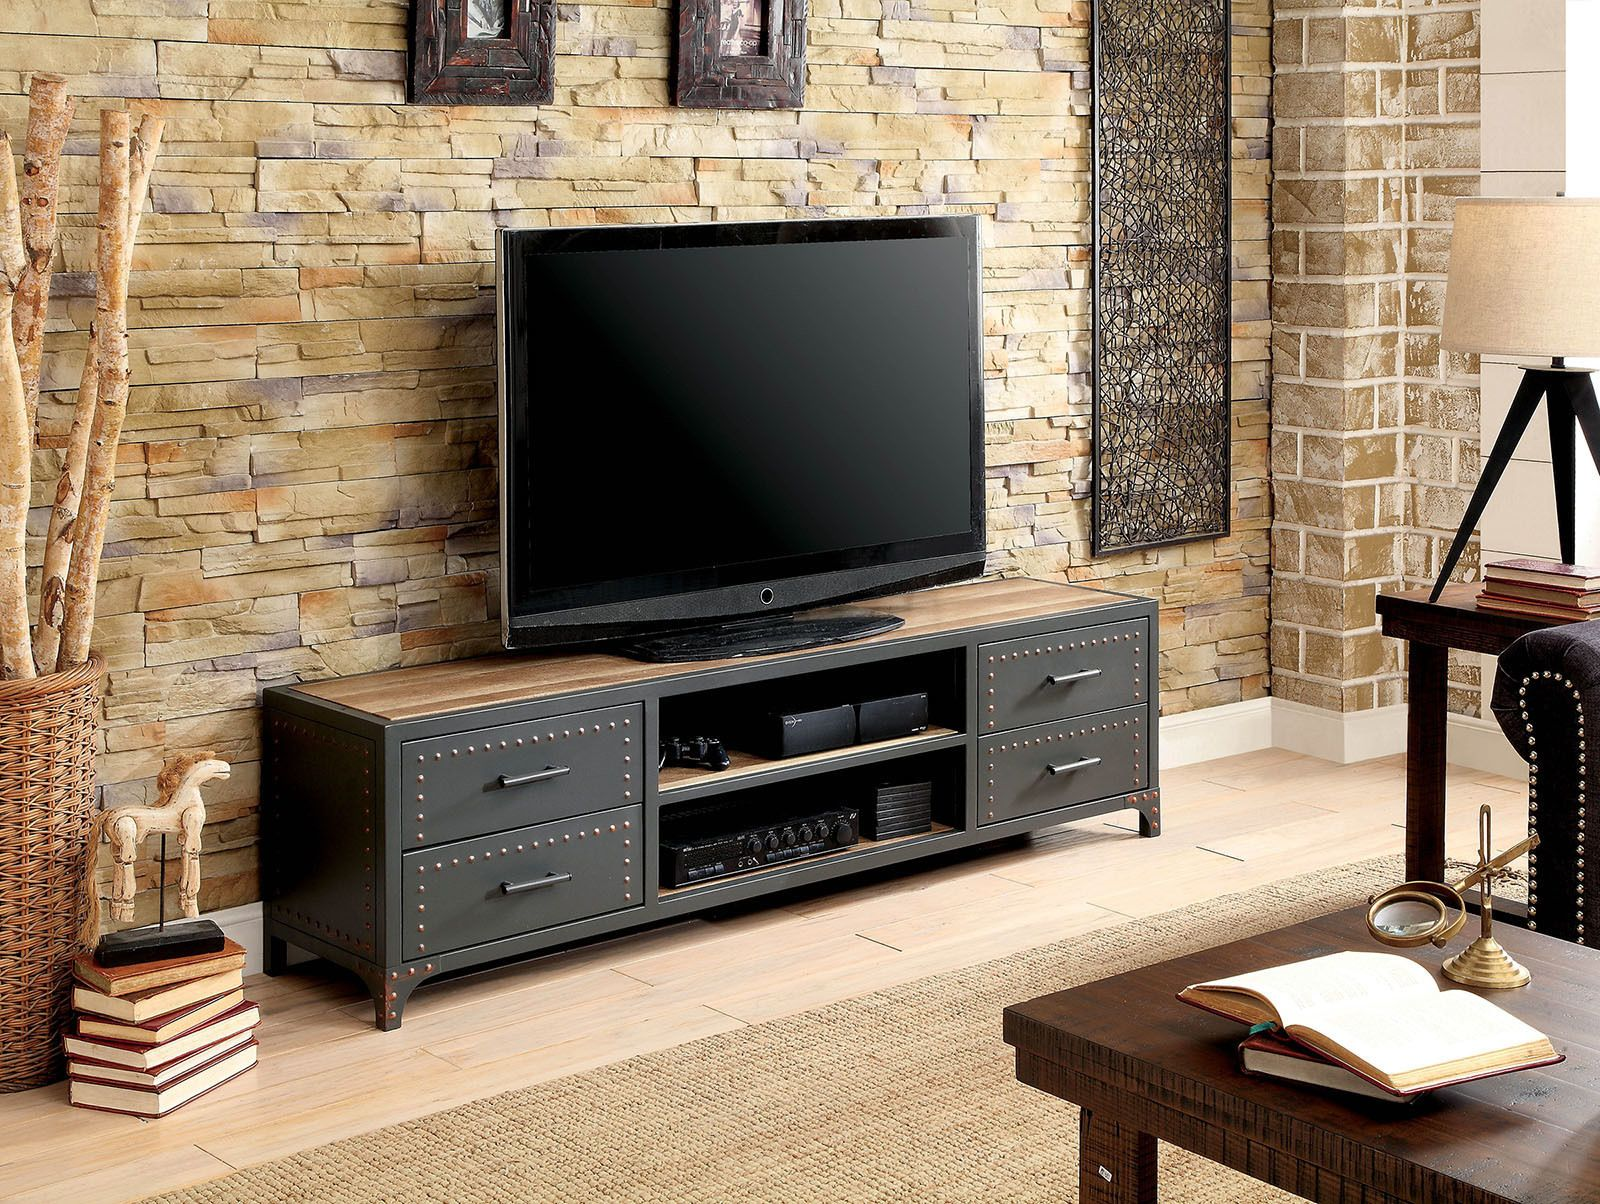 Galway Tv Stand Cm5904 Furniture Of America Tv Stands In 2021 Tv Stand Wood Wooden Tv Stands Metal Tv Stand [ 1204 x 1600 Pixel ]